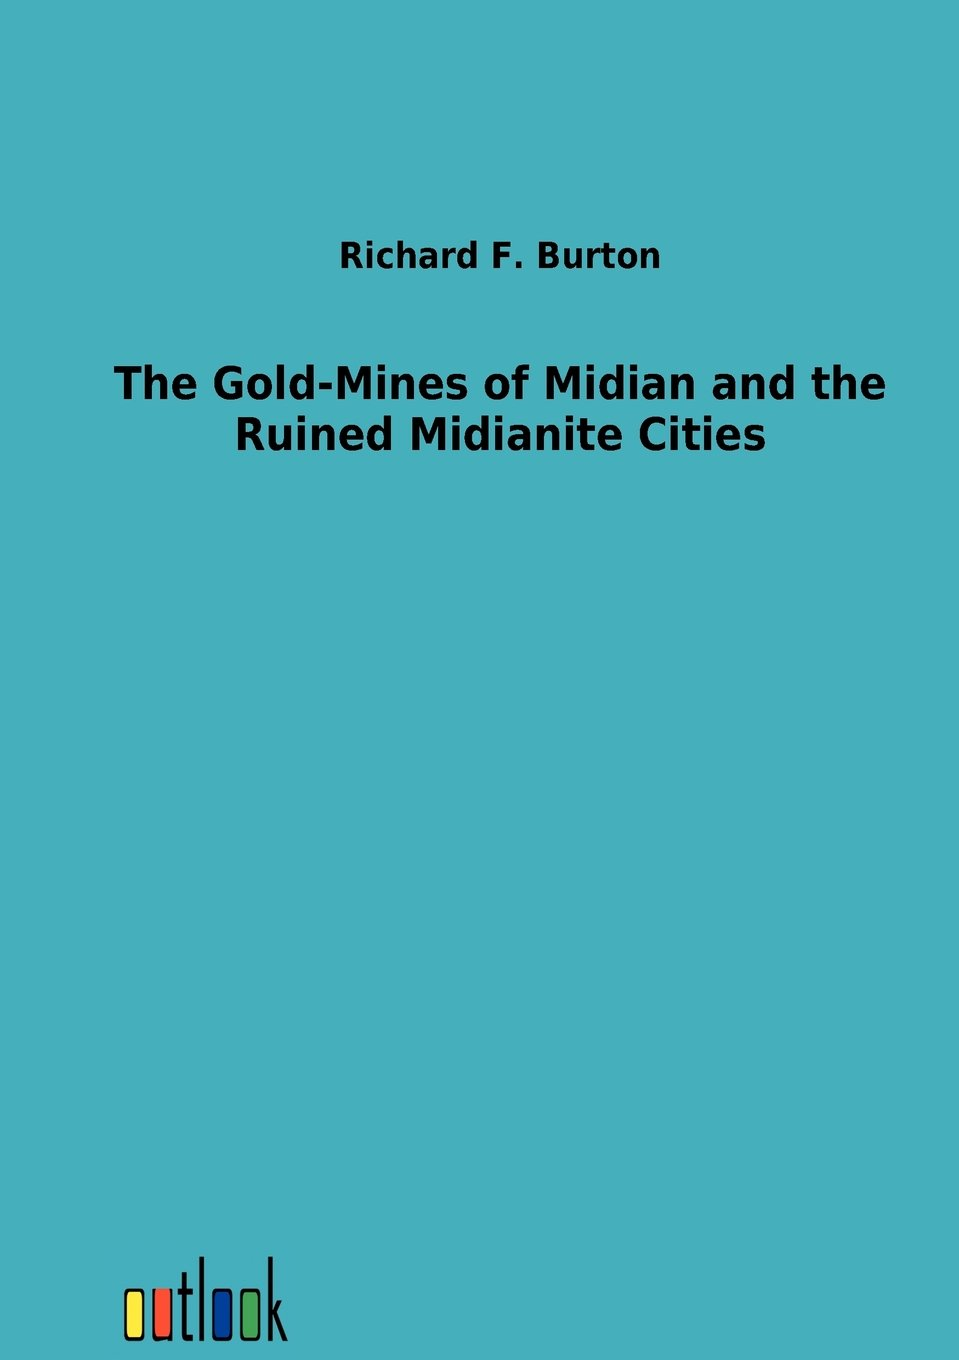 Download The Gold-Mines of Midian and the Ruined Midianite Cities ebook